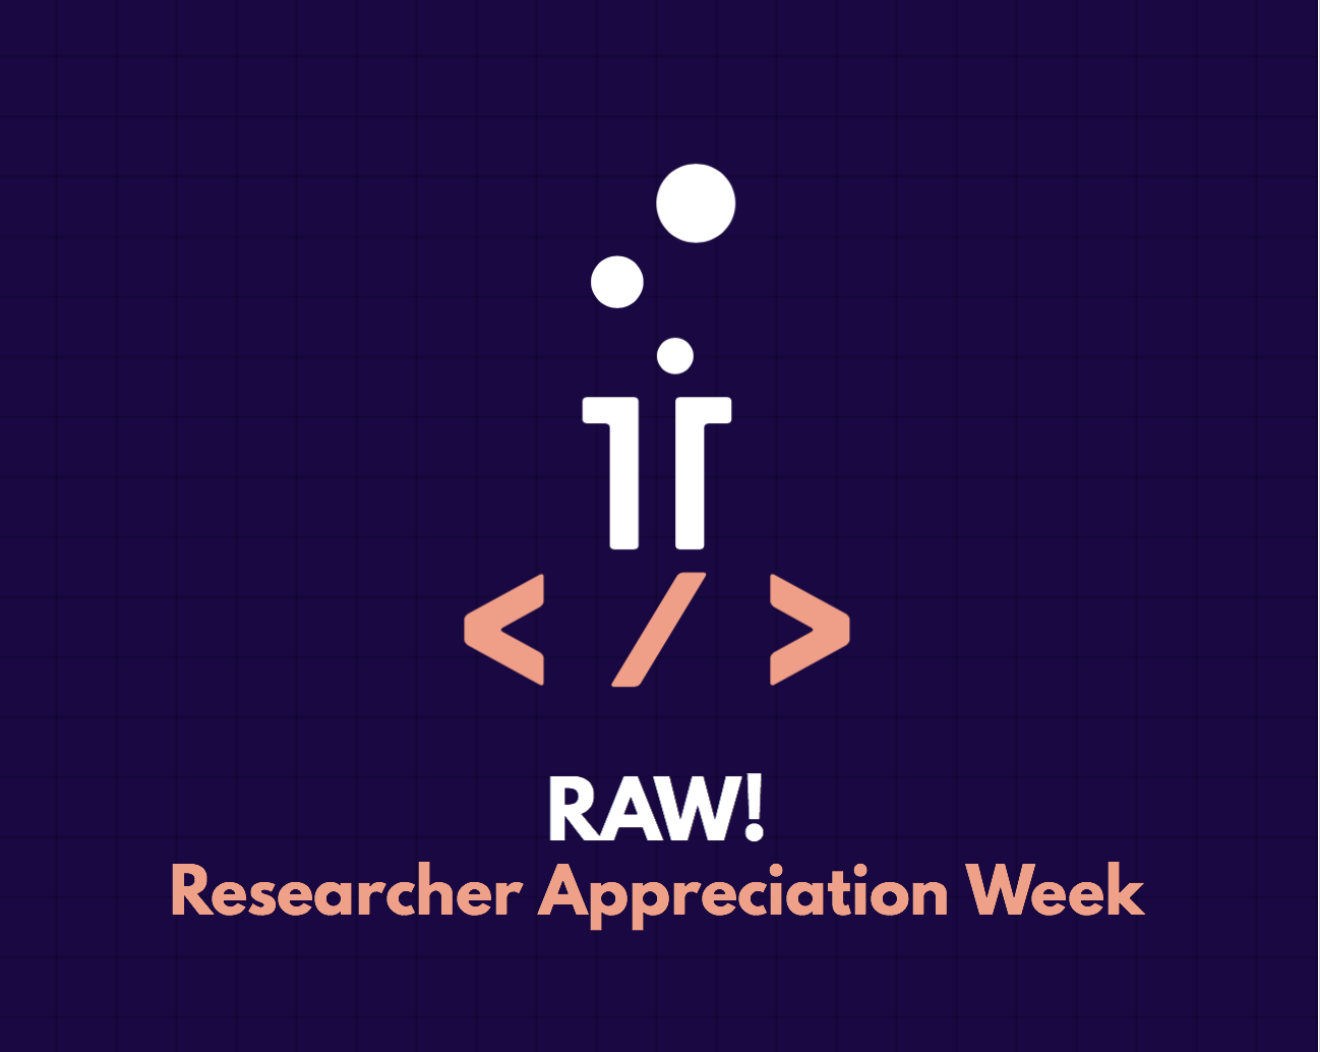 Researcher Appreciation Week